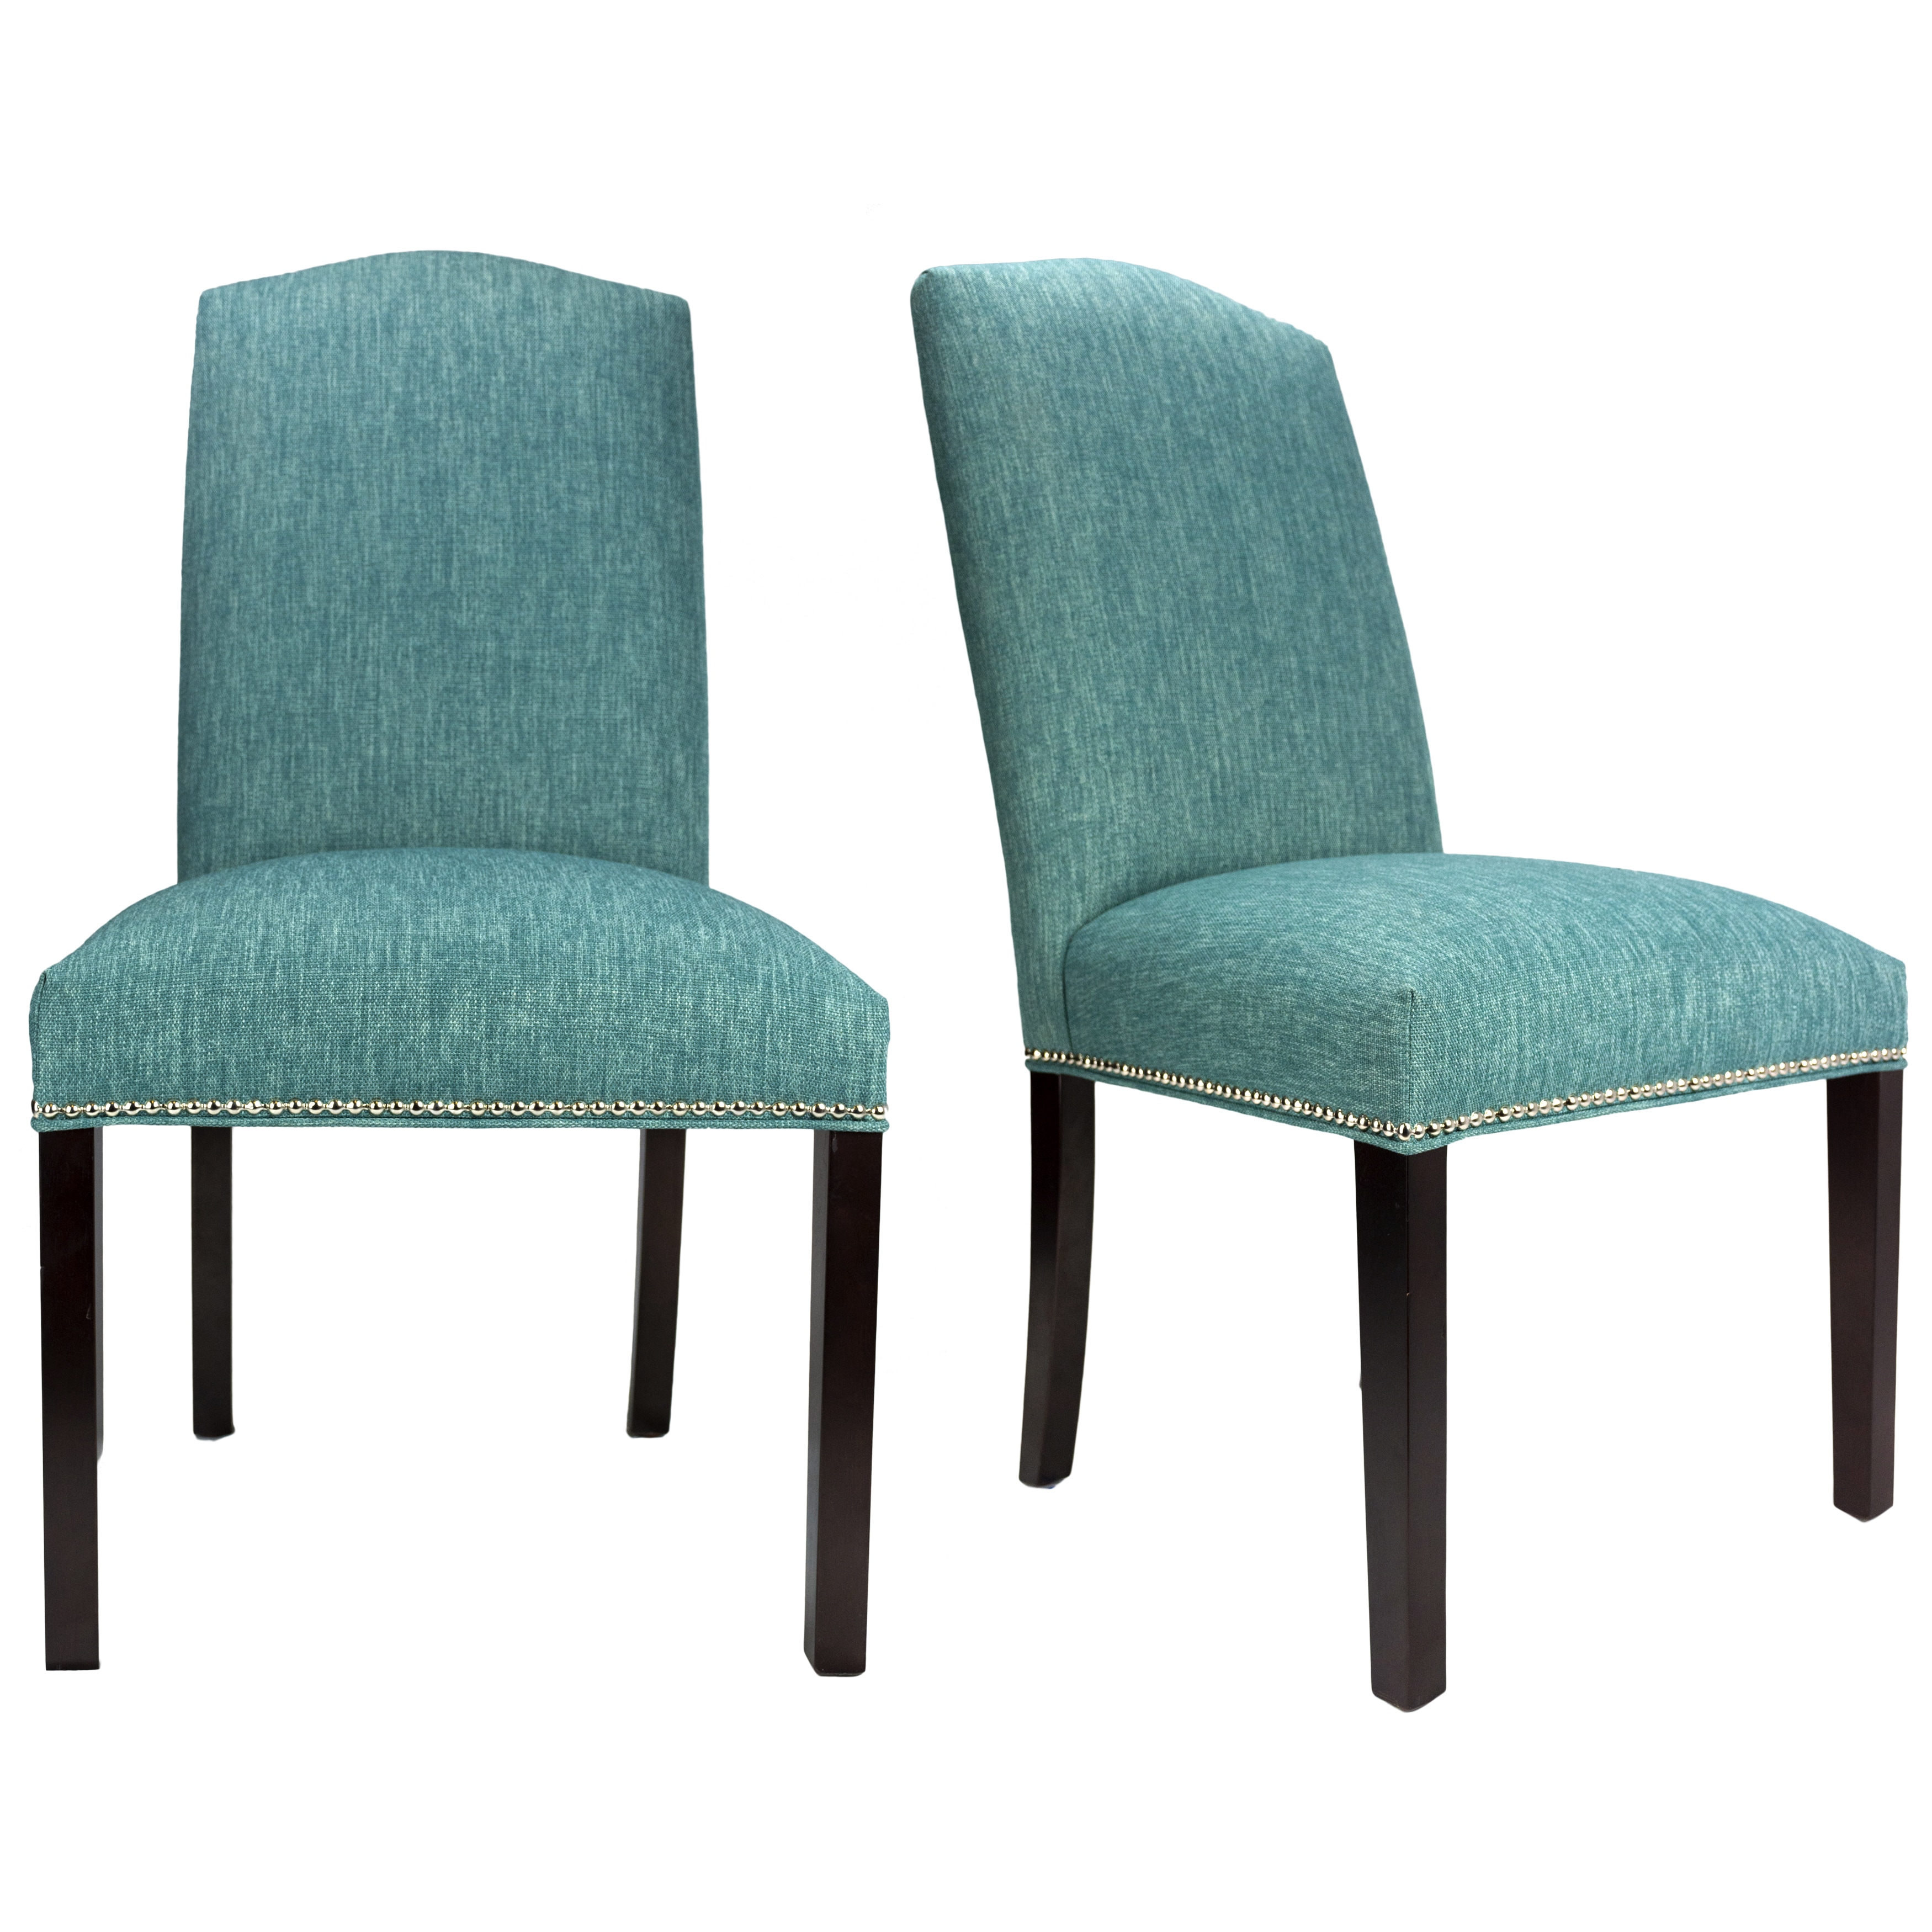 Details About Key Largo Espresso Legs Nailhead Trim Upholstered Dining Chairs Set Of 2 21